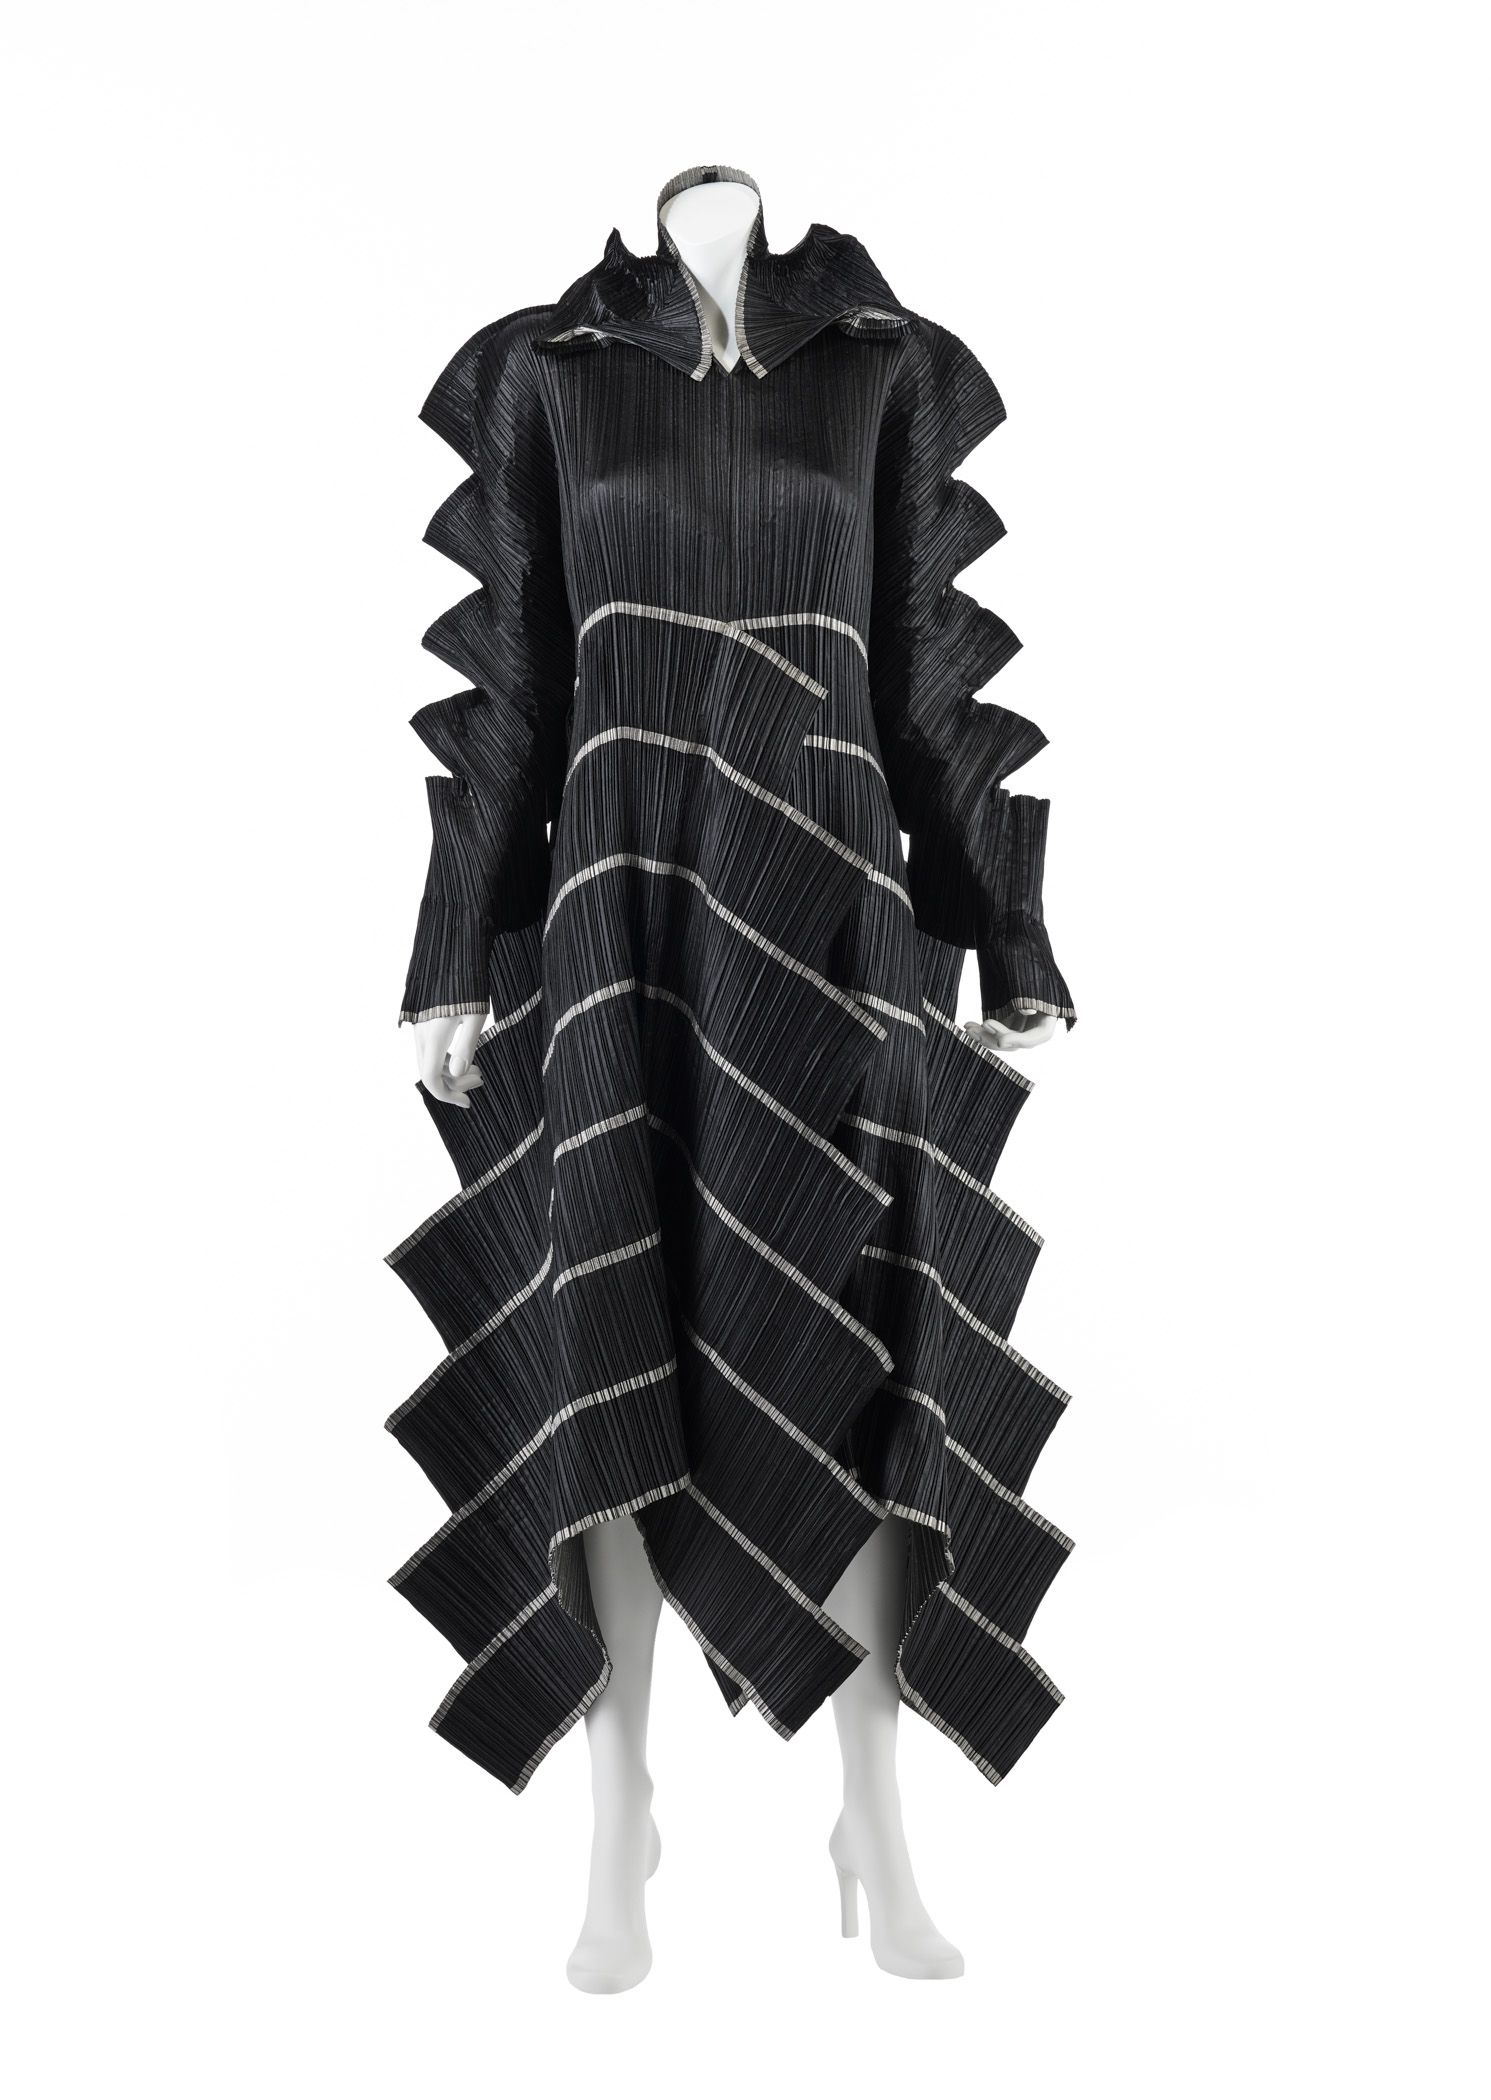 Dress Staircase Pleats Issey Miyake Japanese Fashion Designers Fashion Japanese Fashion